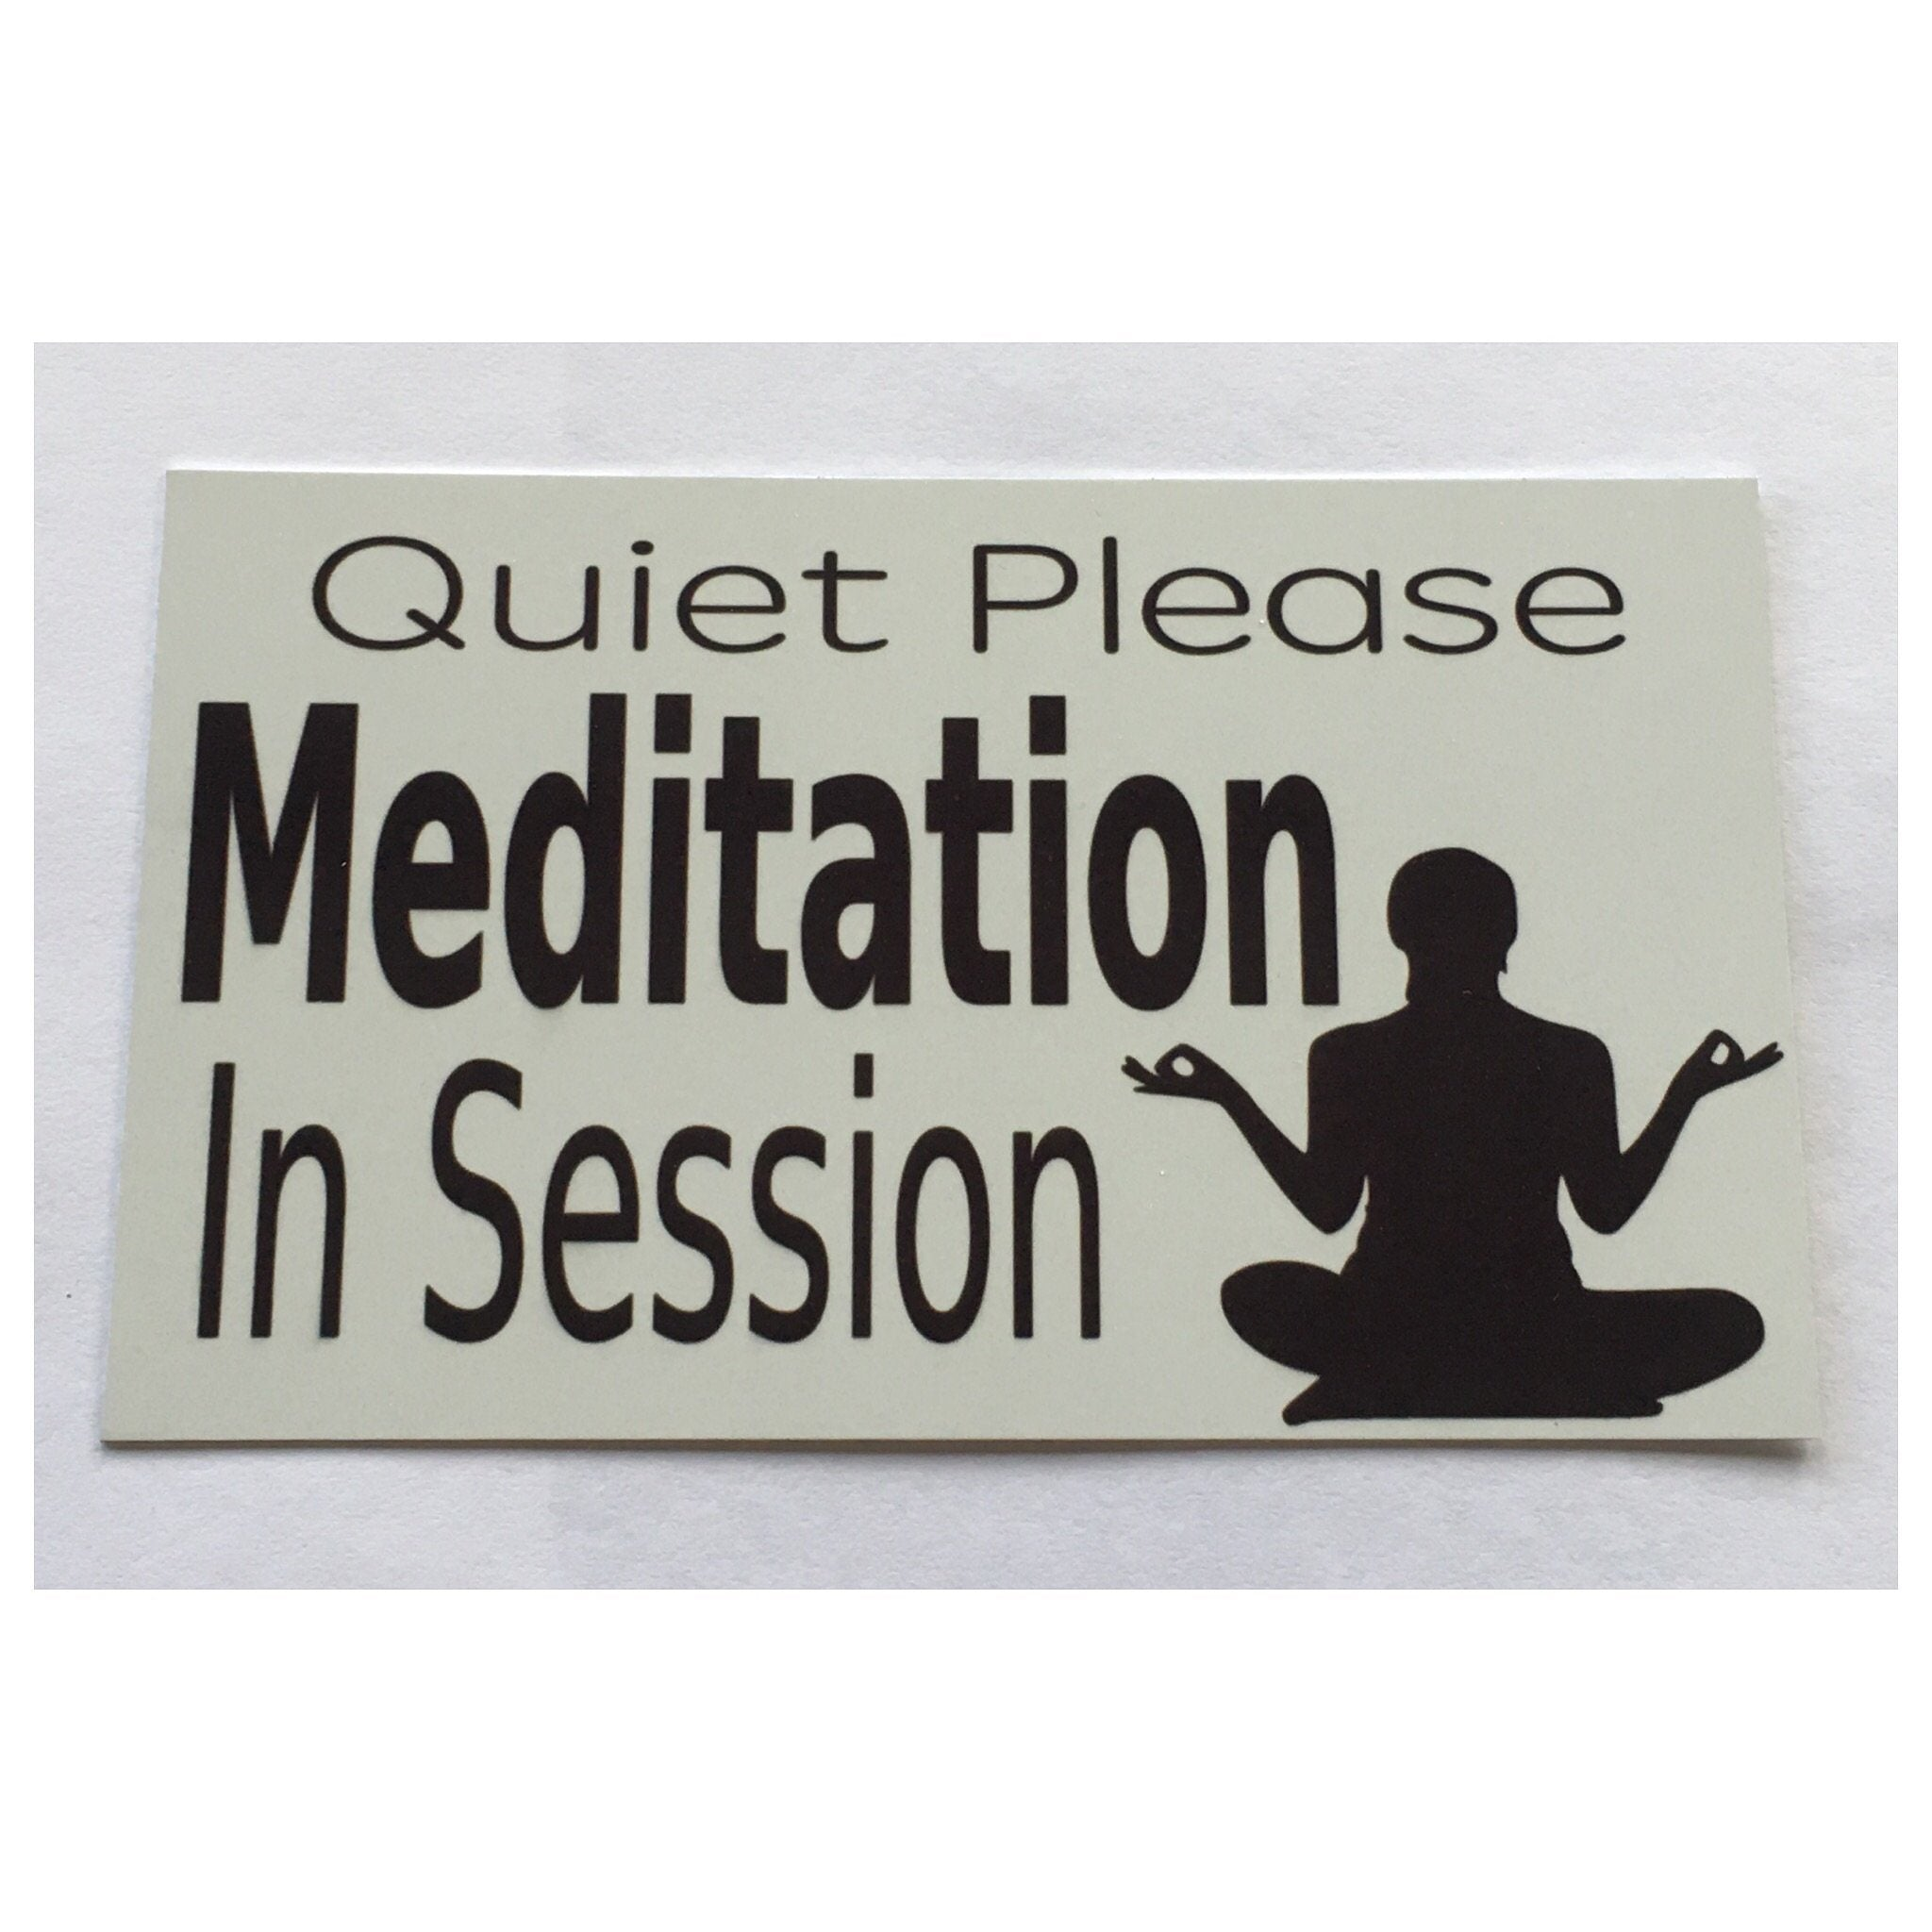 Quiet Please Meditation In Session Sign